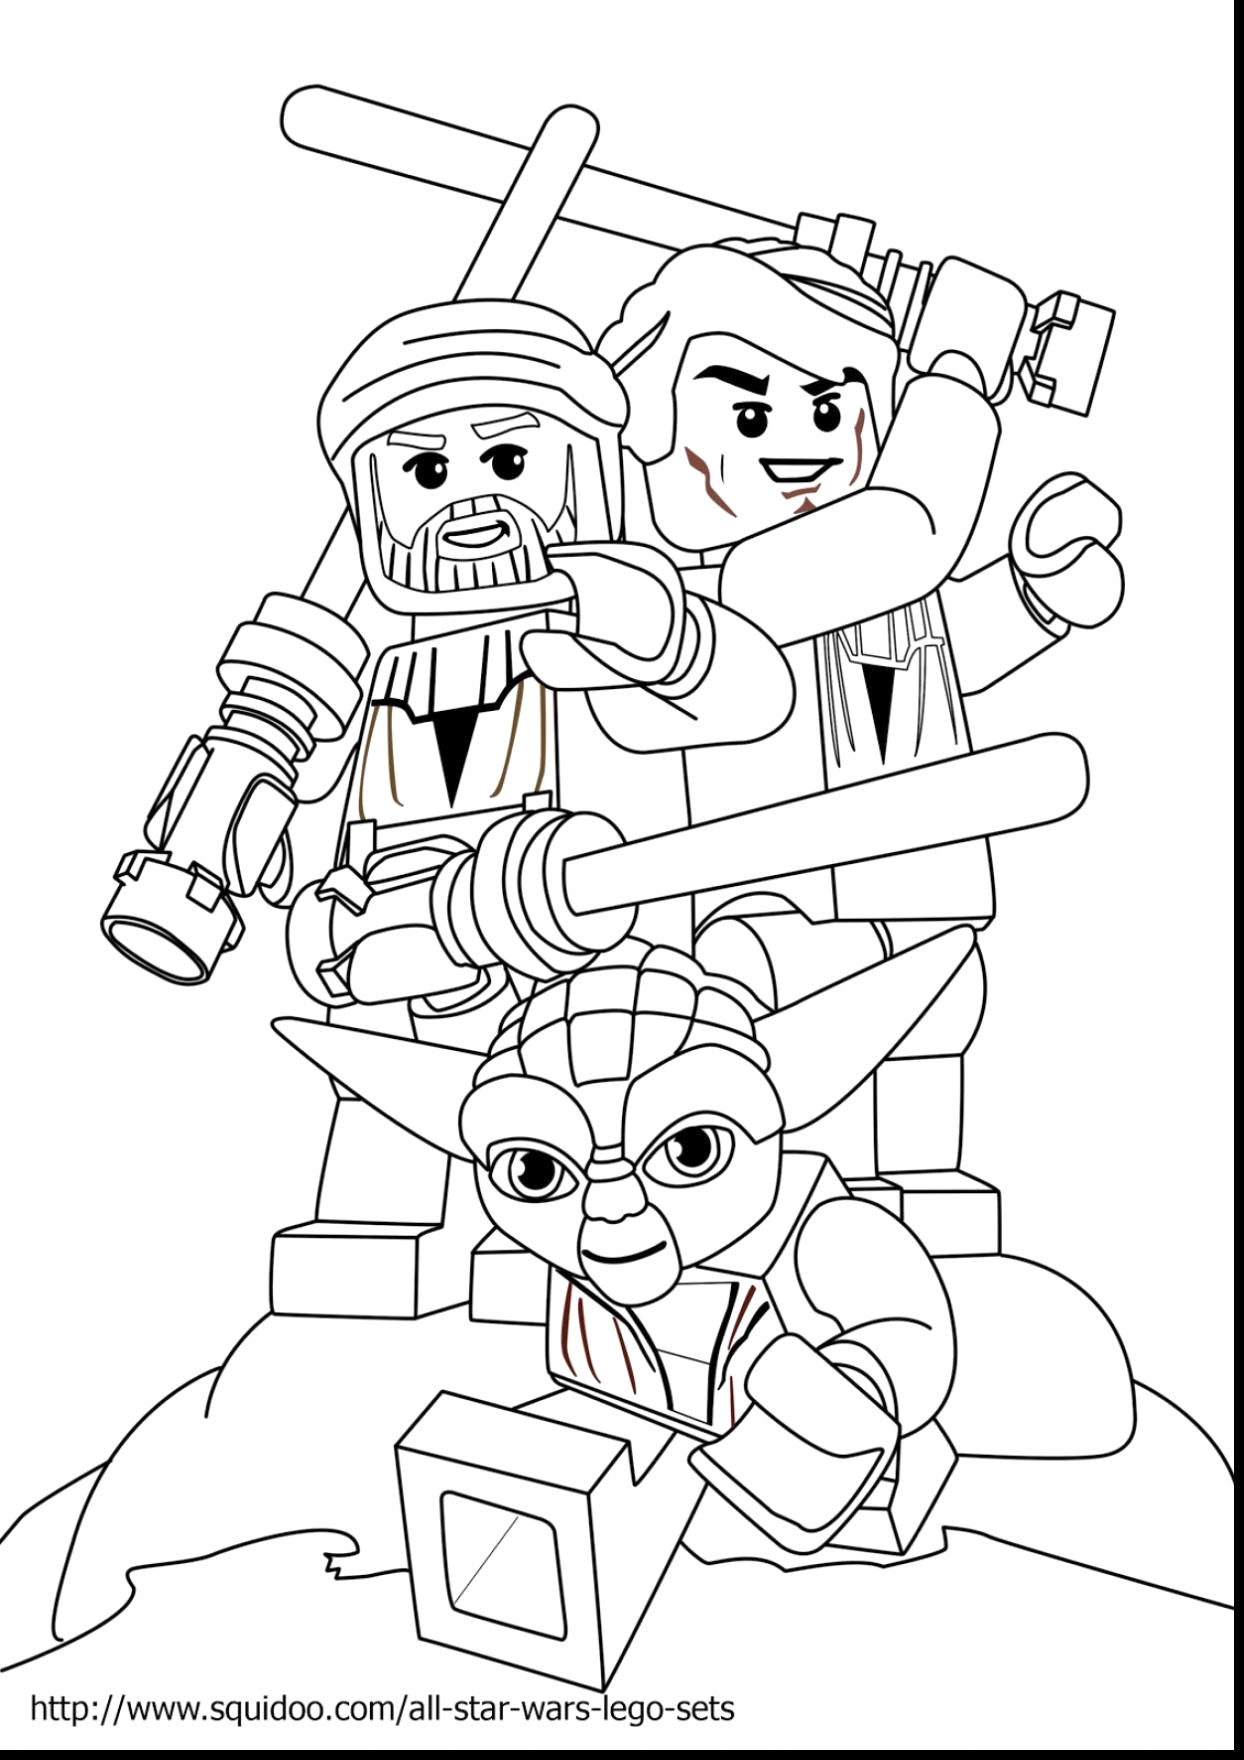 lego hawkeye coloring pages hawkeye coloring pages coloring pages for children hawkeye lego pages coloring